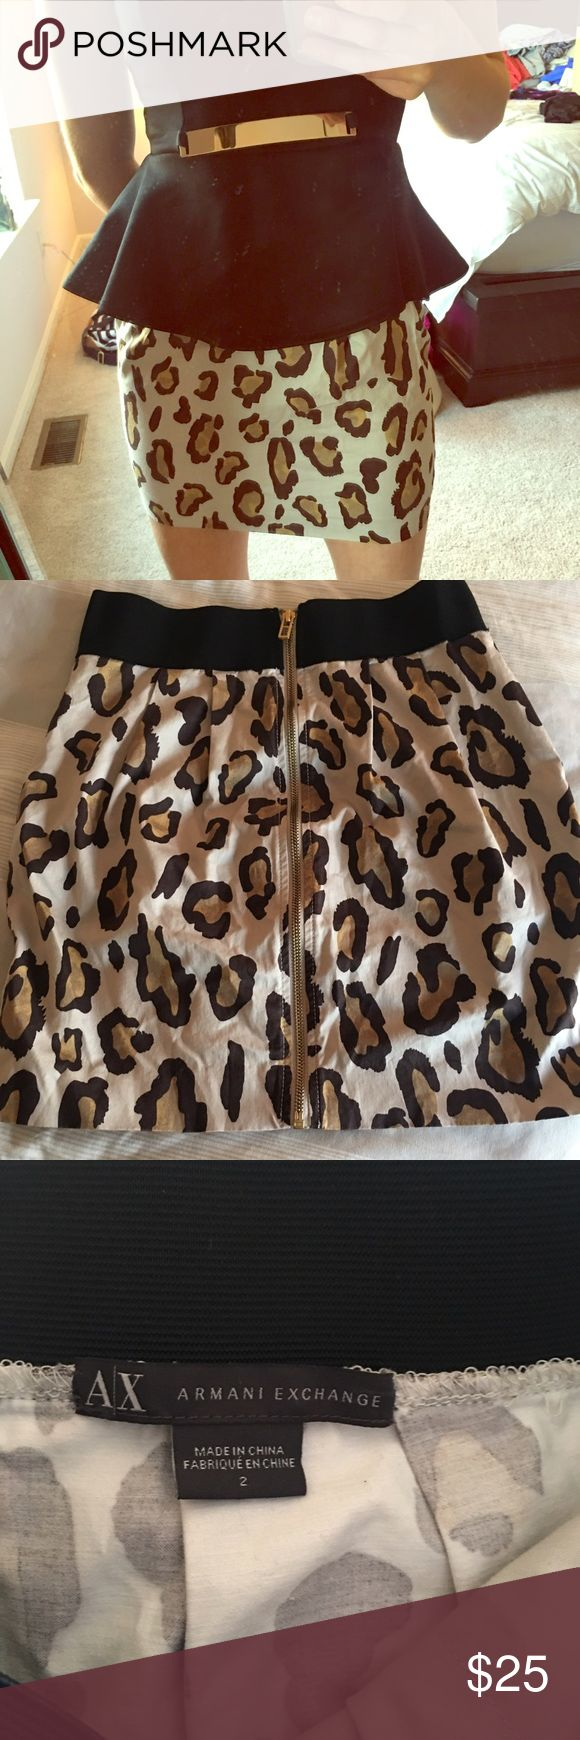 AX cheetah skirt with gold zipper down back AX cheetah skirt with gold zipper down back. Great condition. Worn once A/X Armani Exchange Skirts Mini